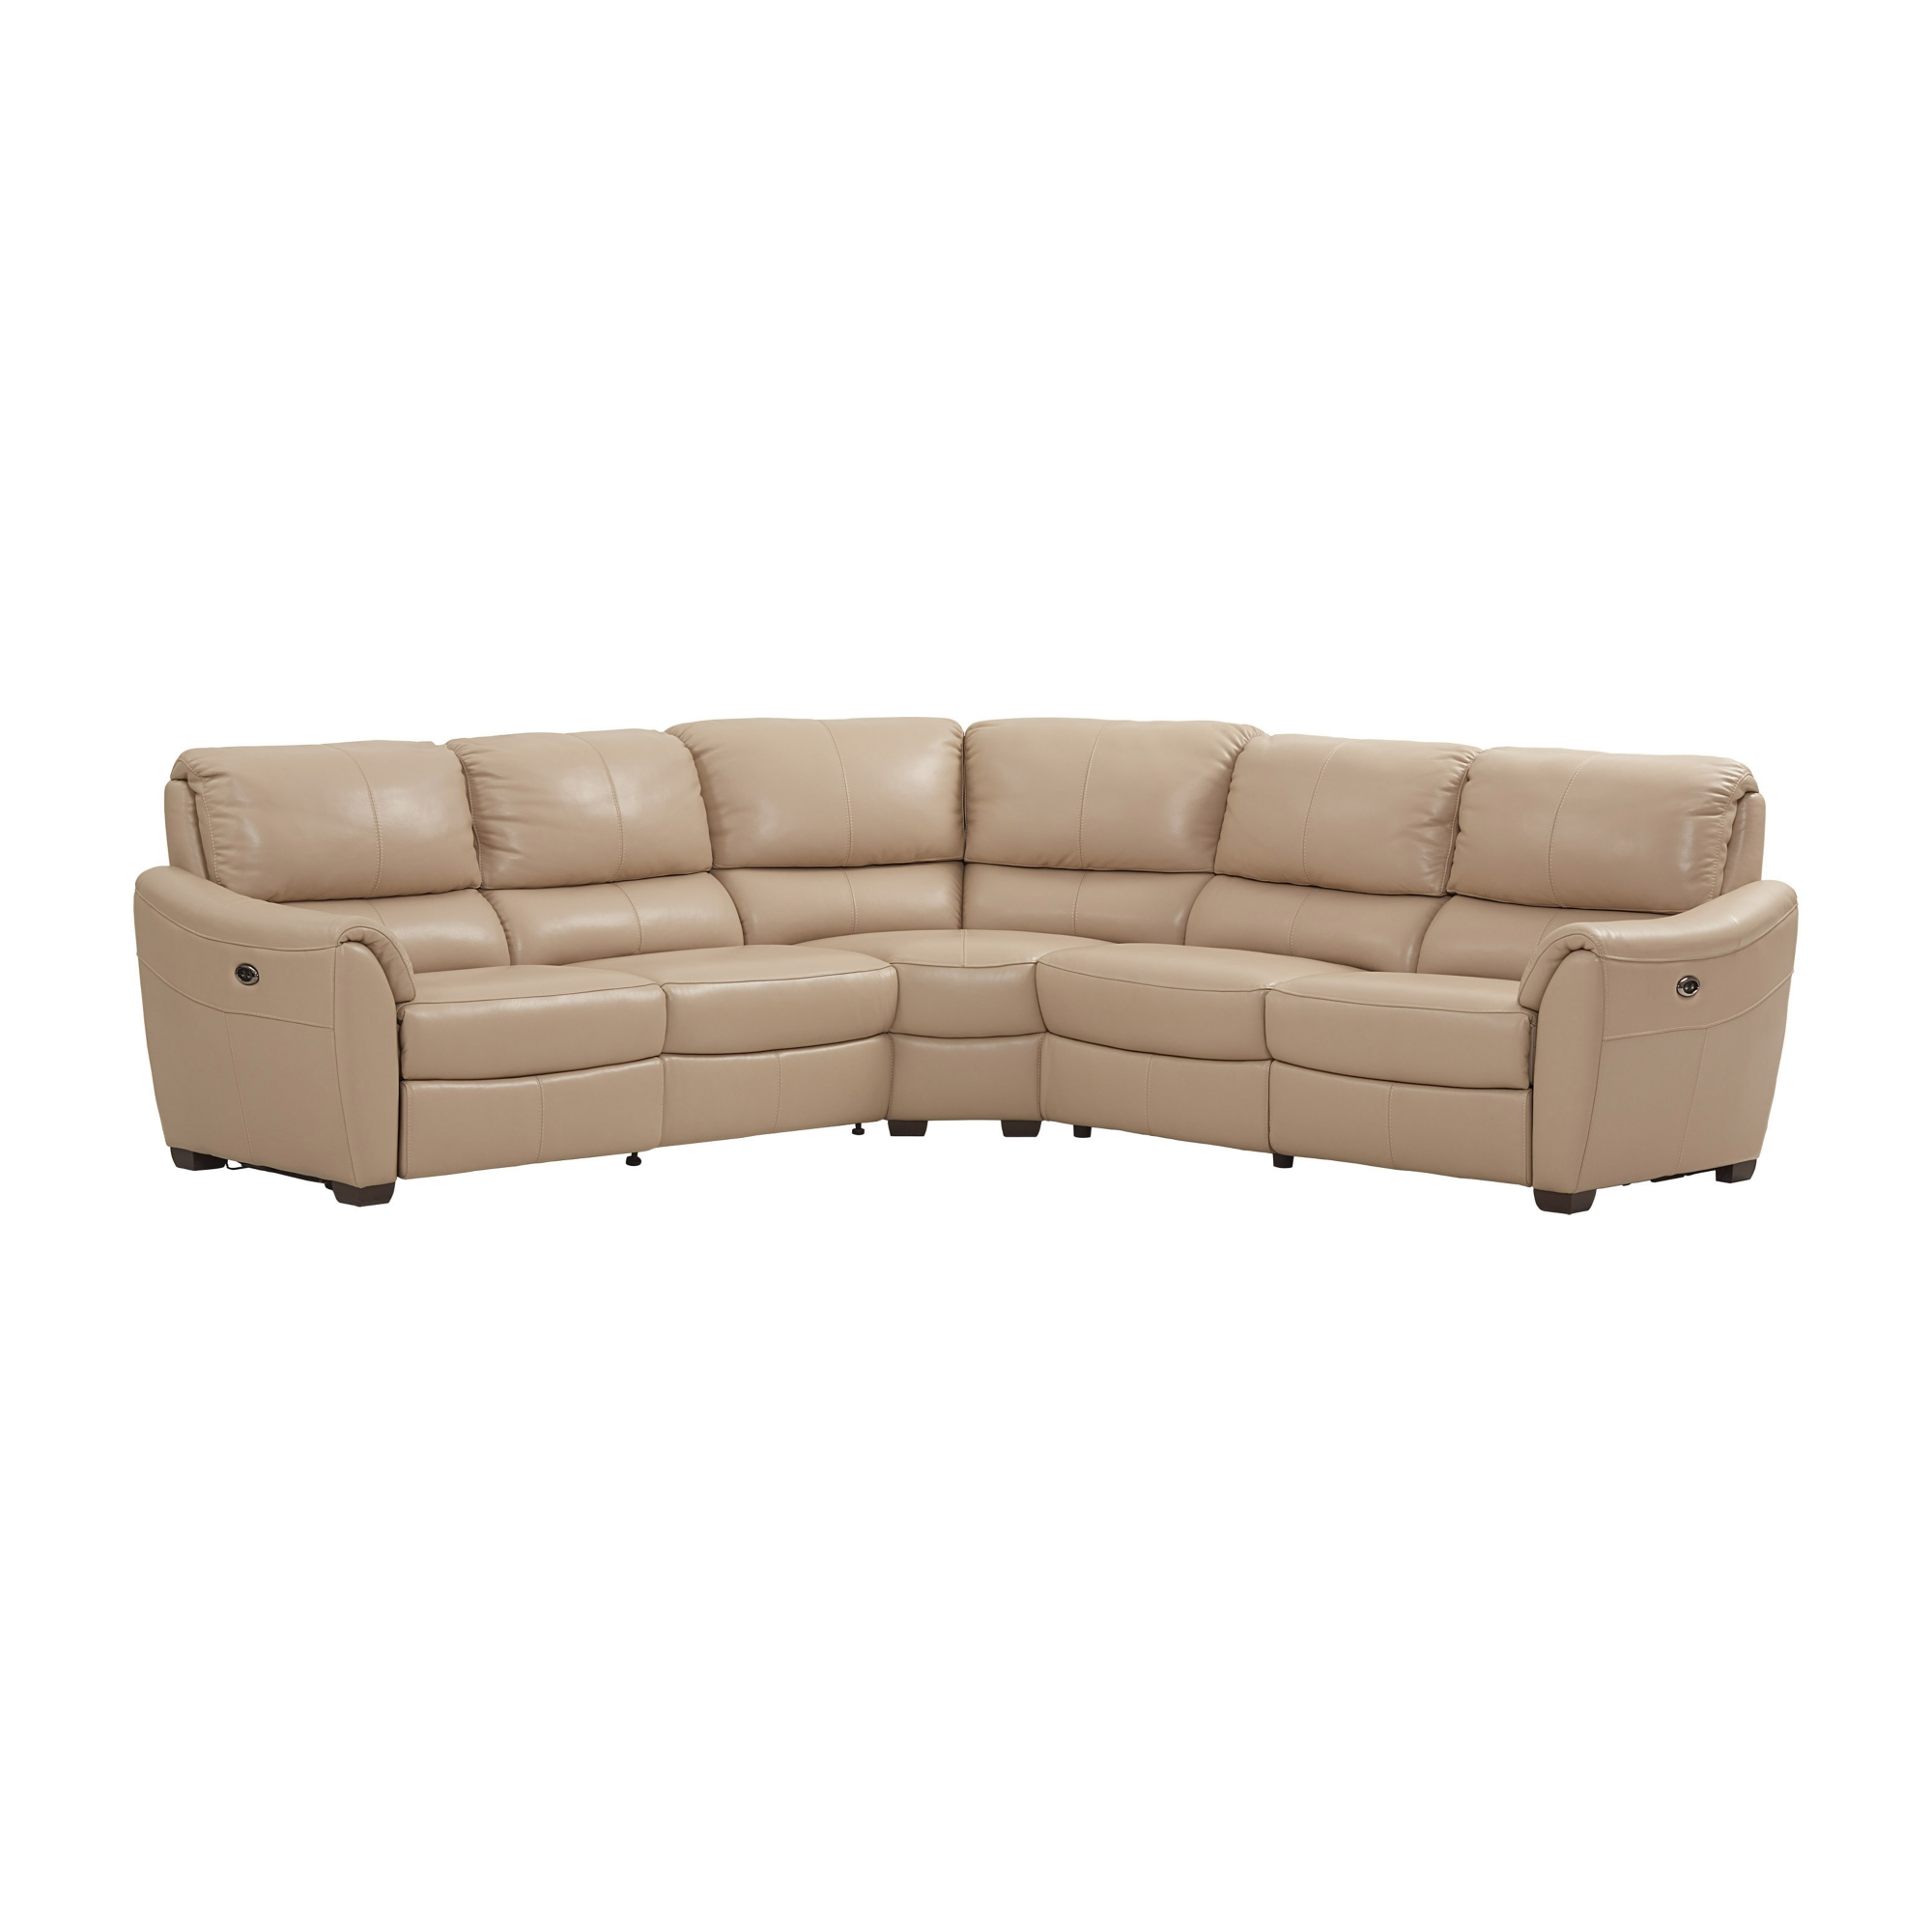 New pit group sofa marmsweb marmsweb for Cheap sectional sofas pittsburgh